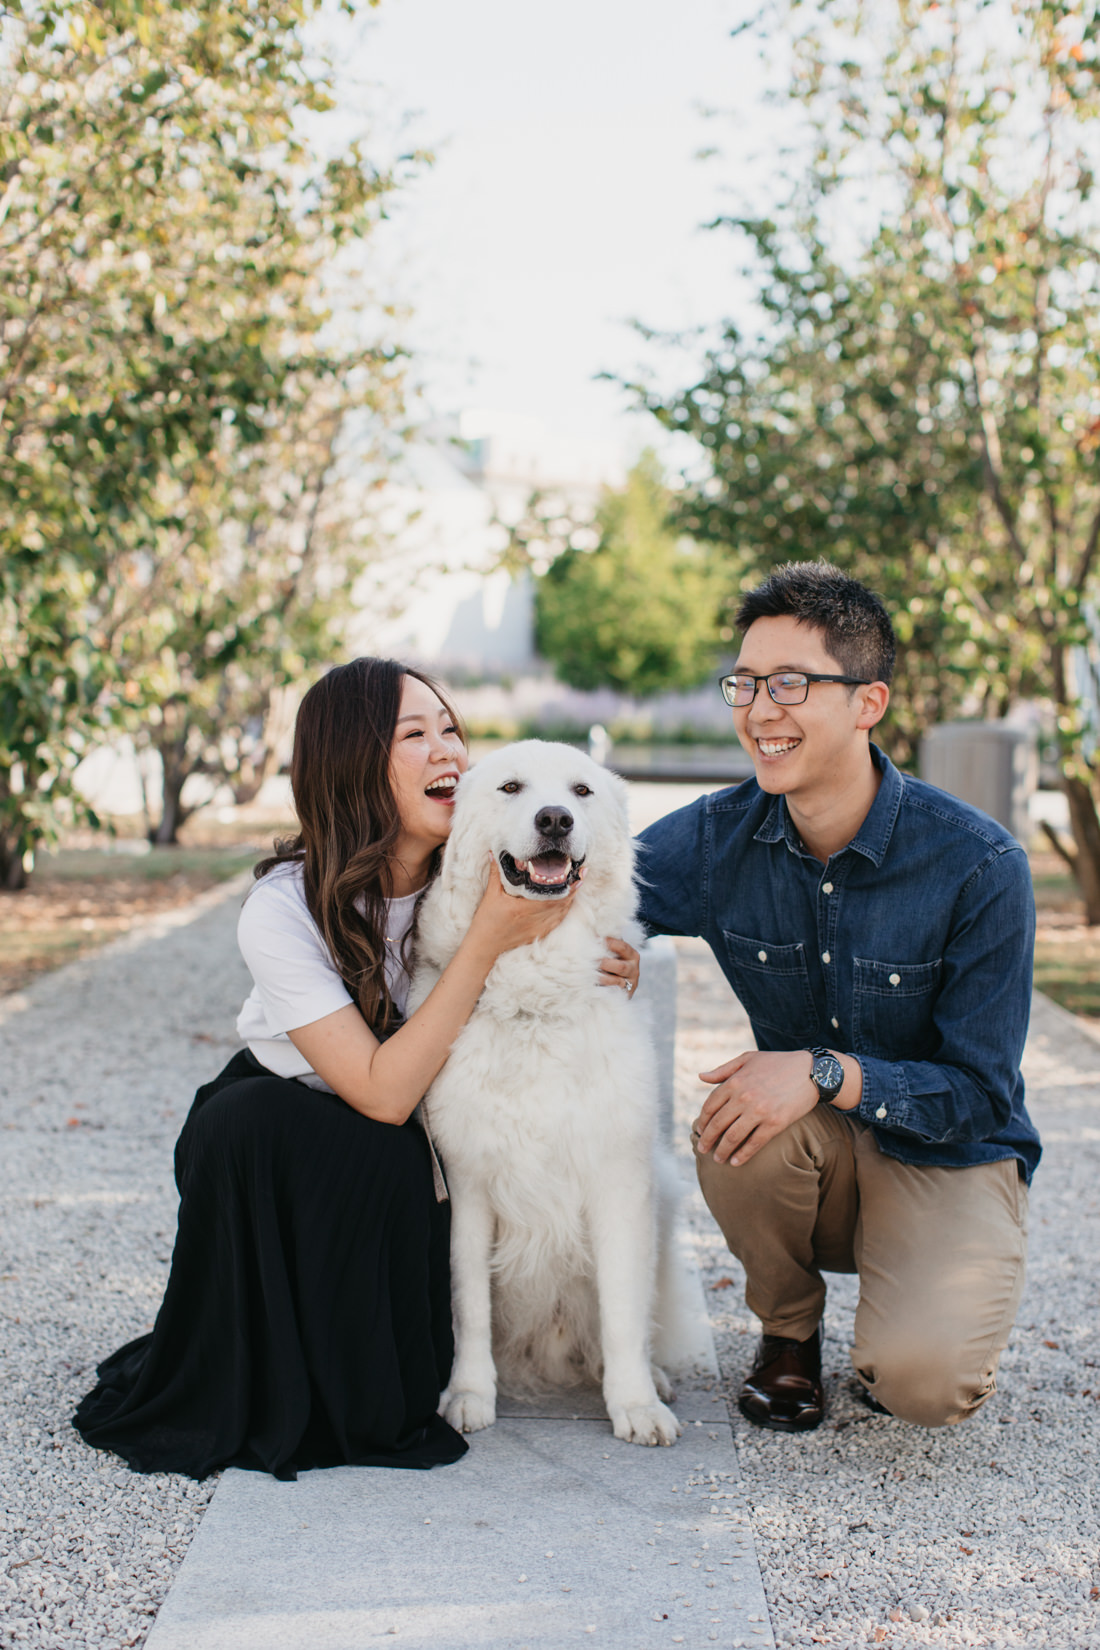 Engagement Photos with pet dog | Toronto Wedding Photographer | EightyFifth Street Photography